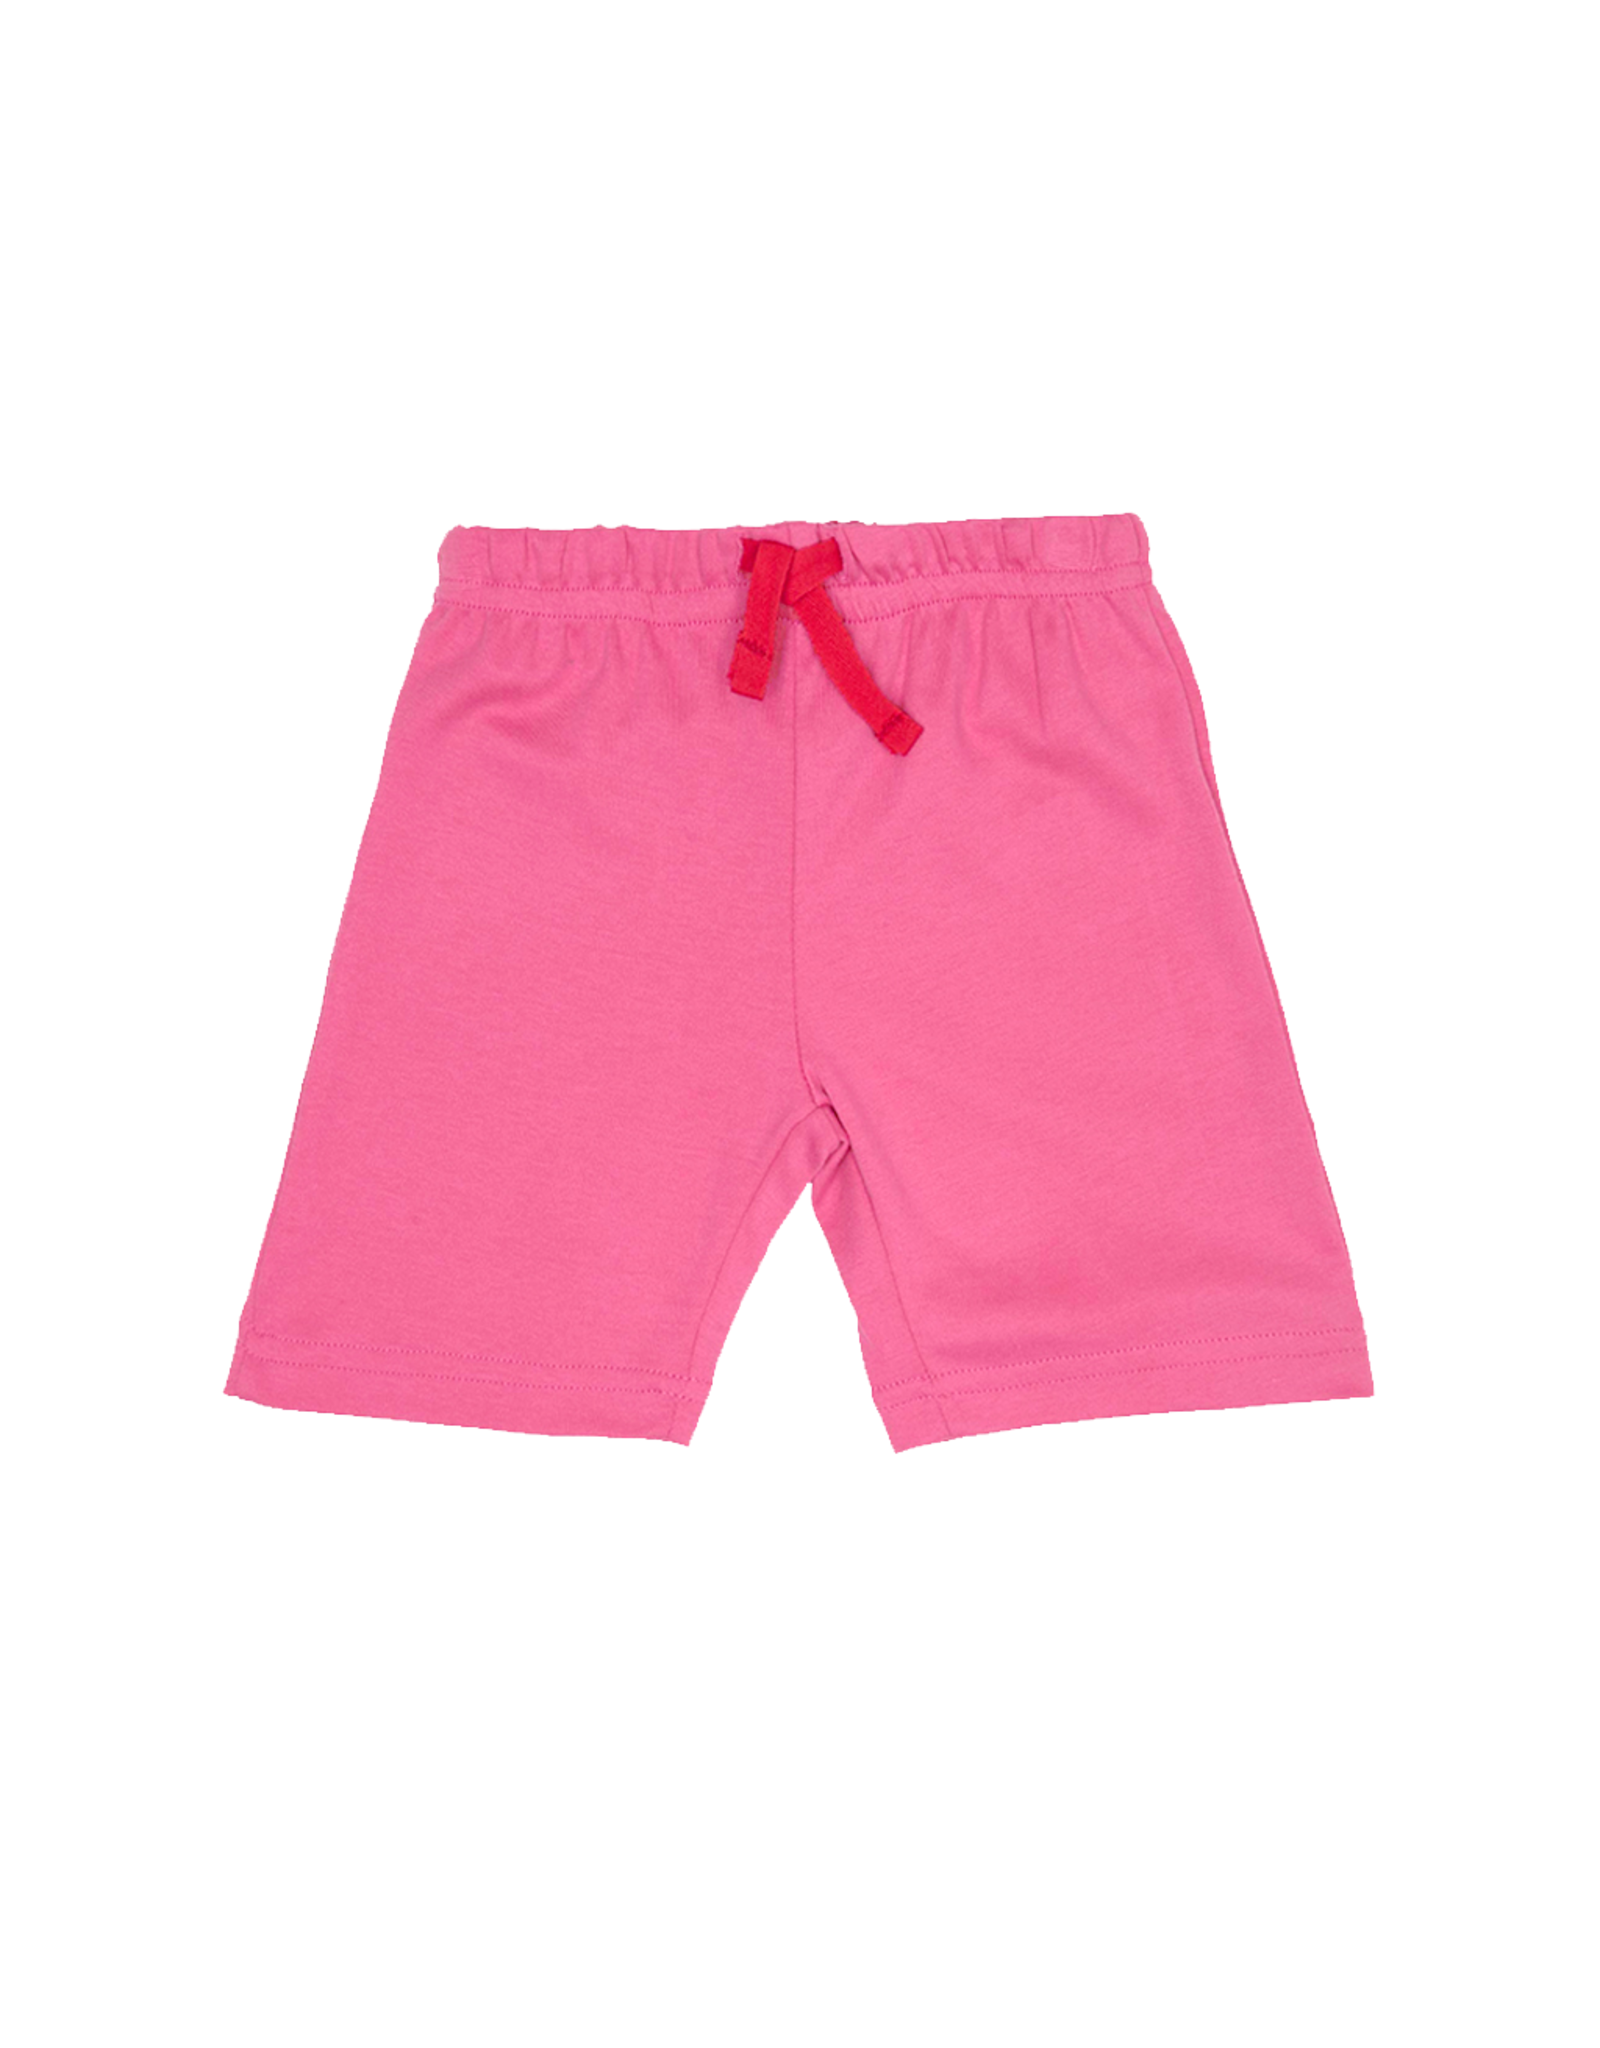 Toby Tiger Children's shorts - pink